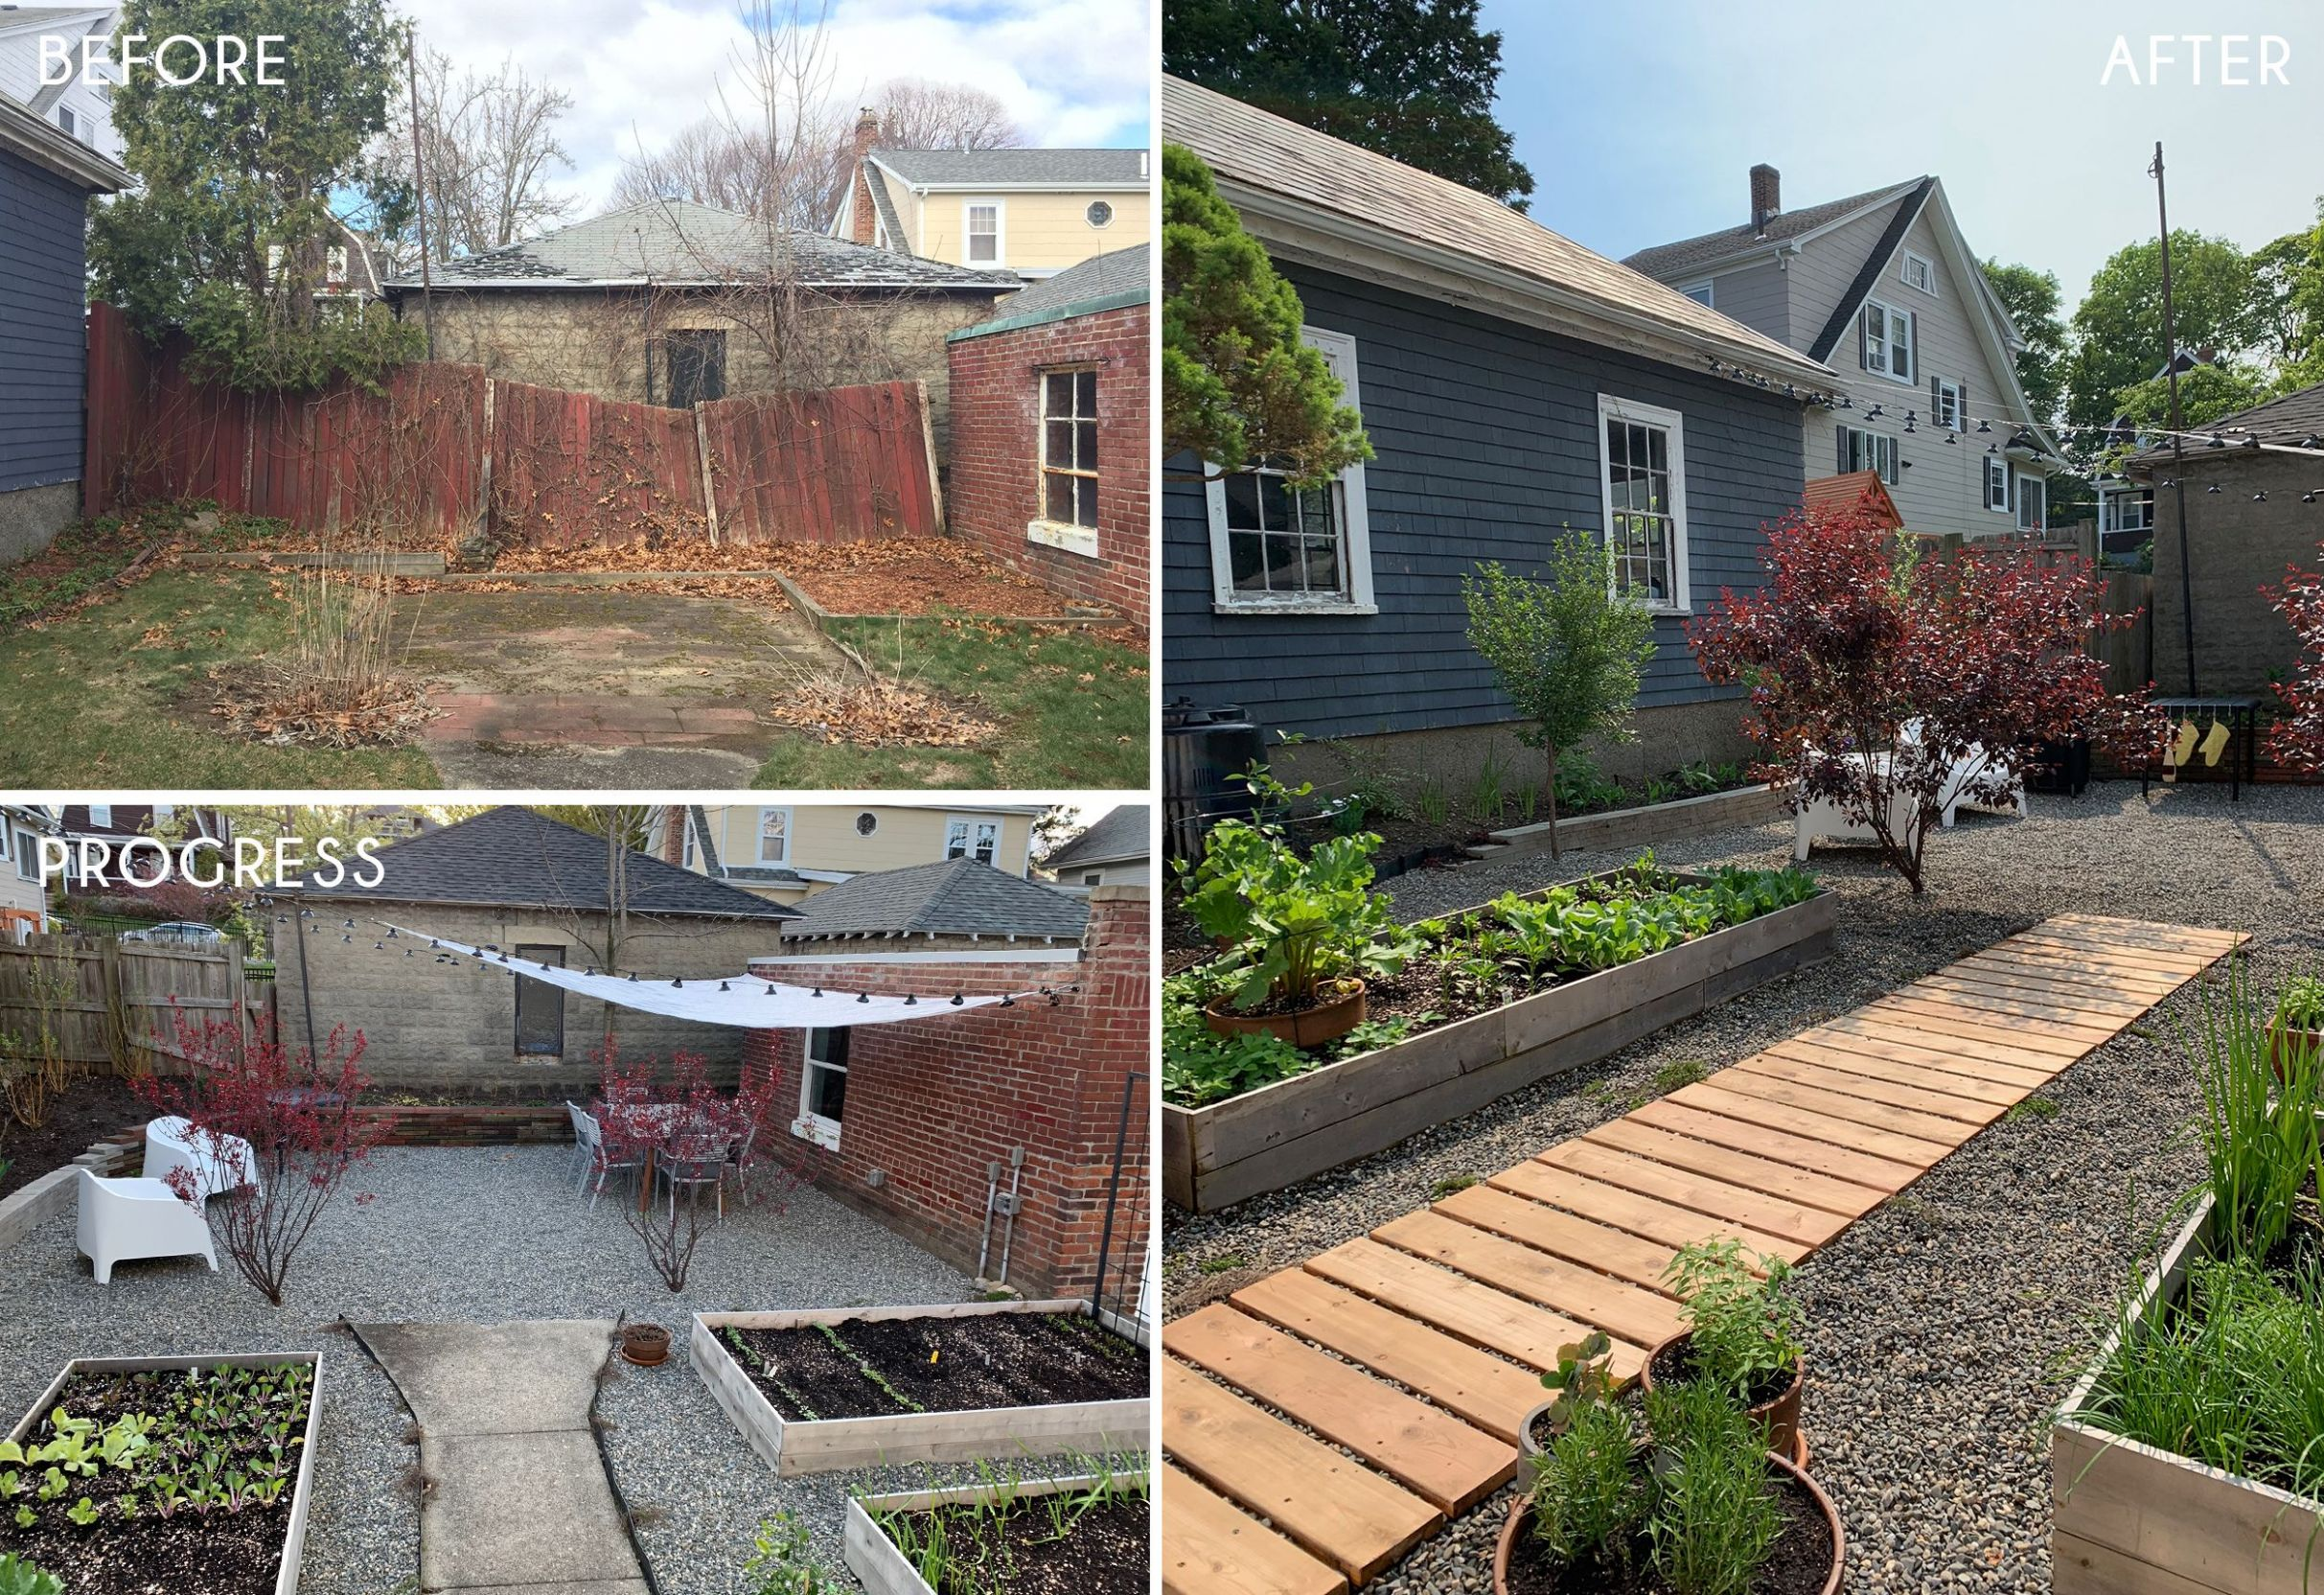 8 Doable DIY Ideas to Transform Your Backyard (With images ..